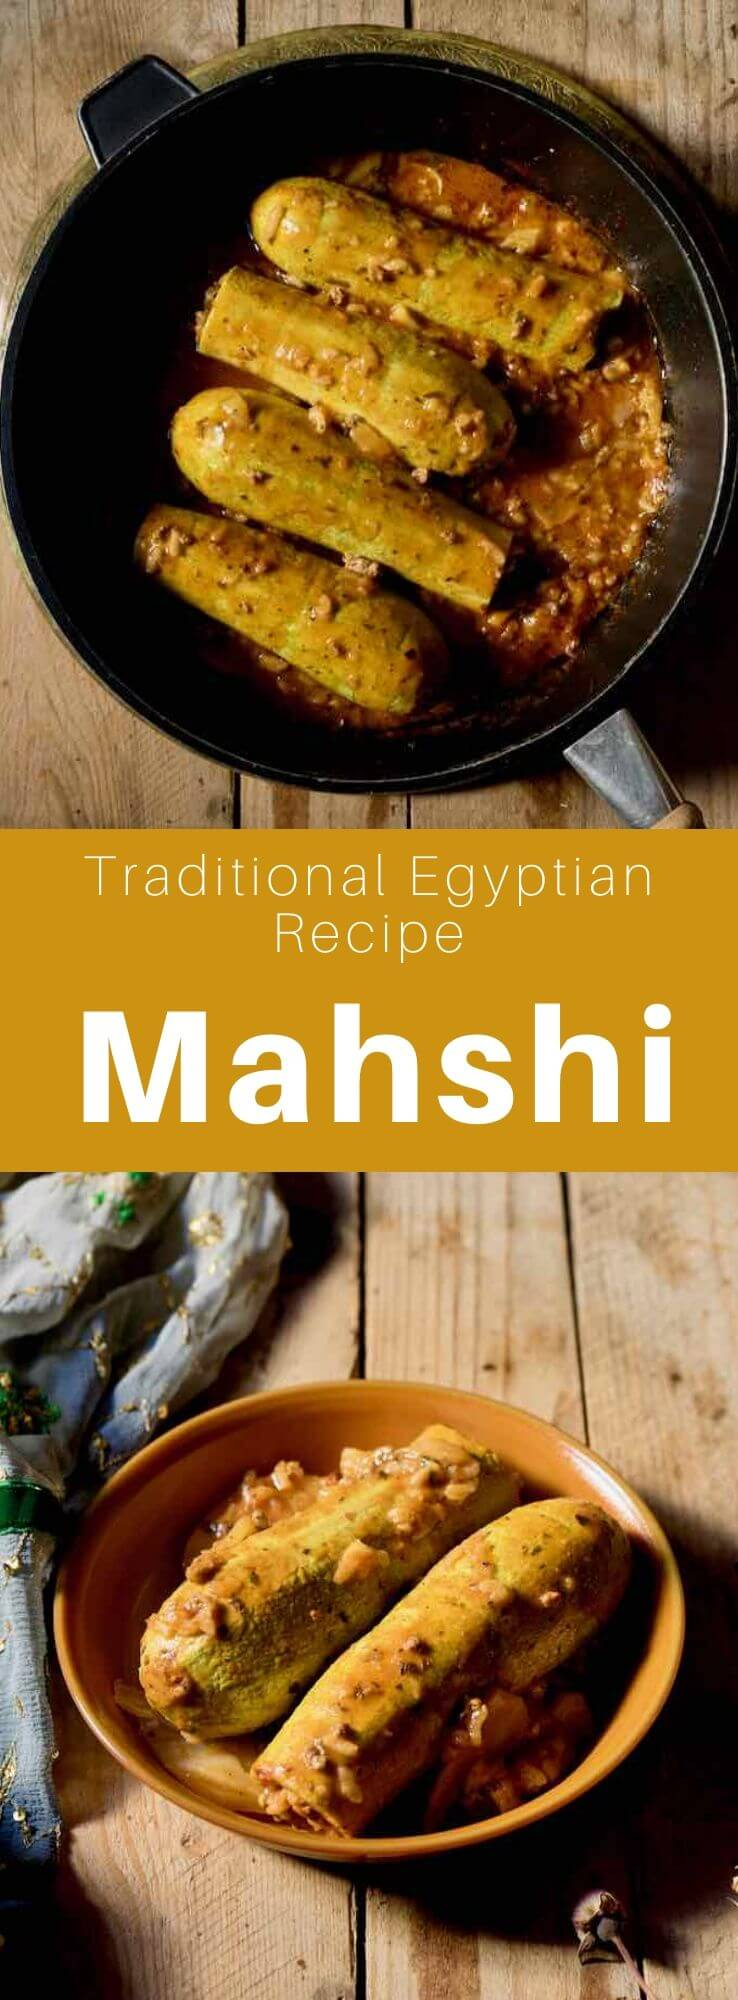 Mahshi is a dish of vegetables stuffed with rice and meat, a traditional dish from the ancient Ottoman Empire, popular in the Balkans, the Levant and Egypt. #Egypt #EgyptianCuisine #EgyptianFood #EgyptianRecipe #WorldCuisine #196flavors